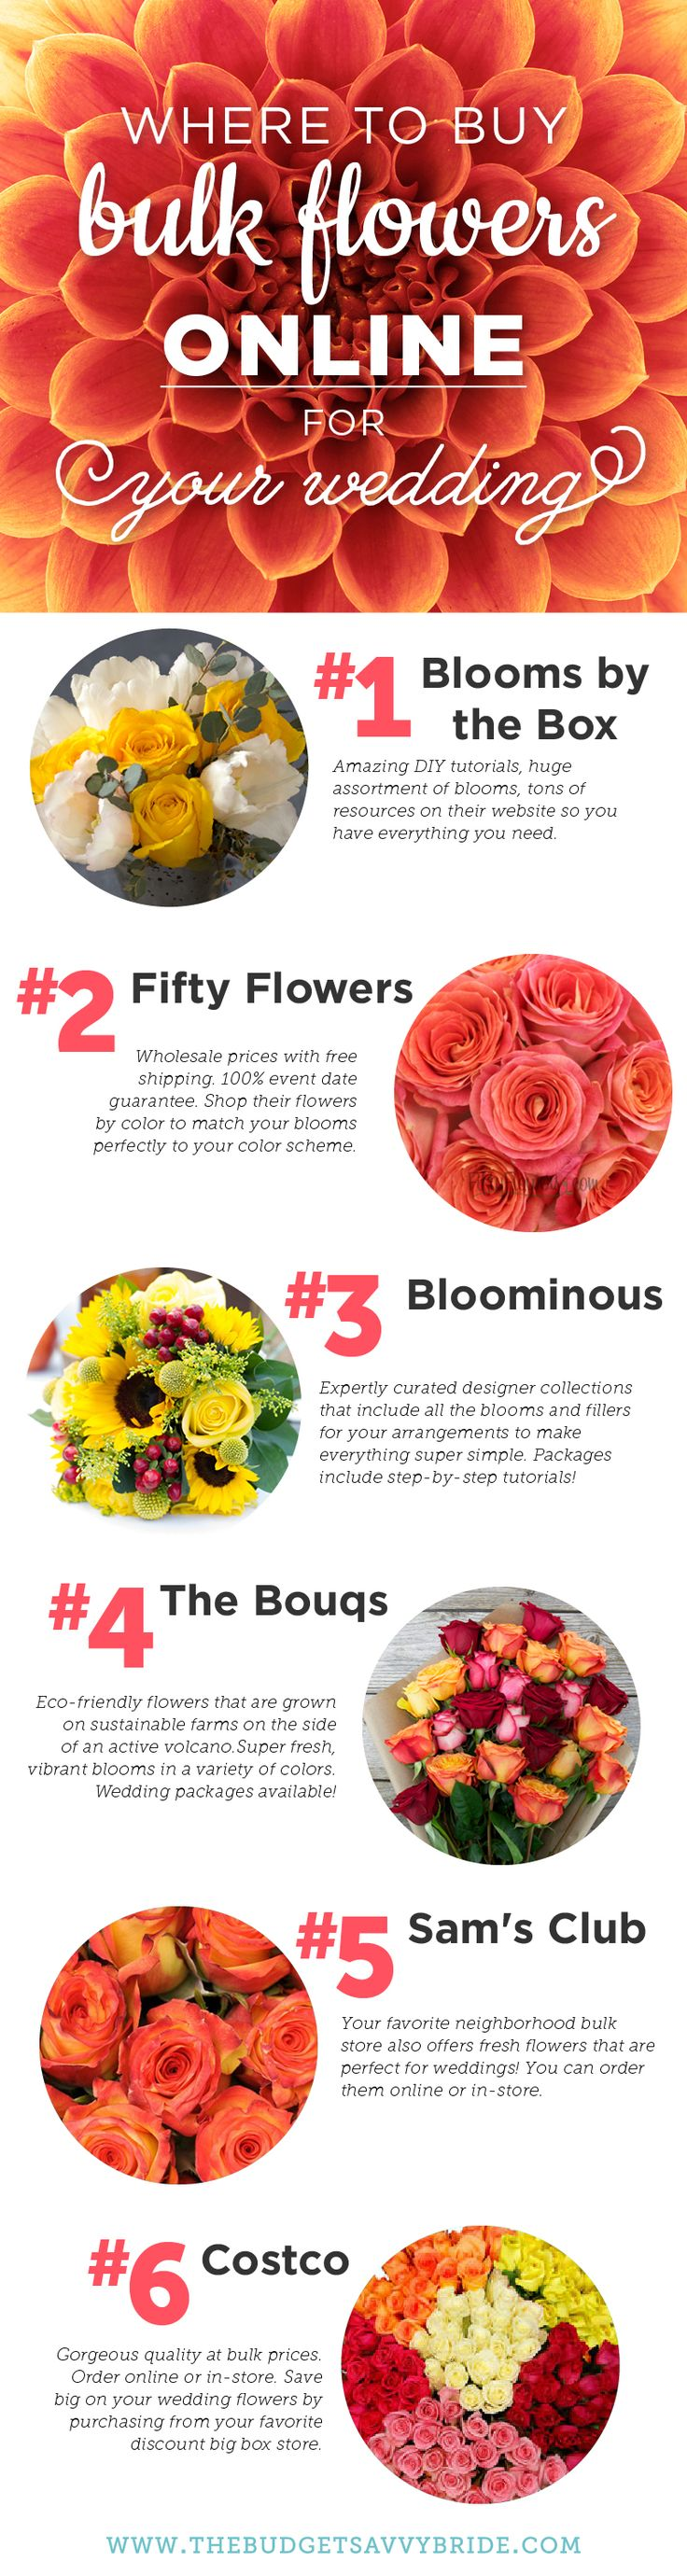 New post on The Budget Savvy Bride: Where to Buy Bulk Flowers Online for Your…